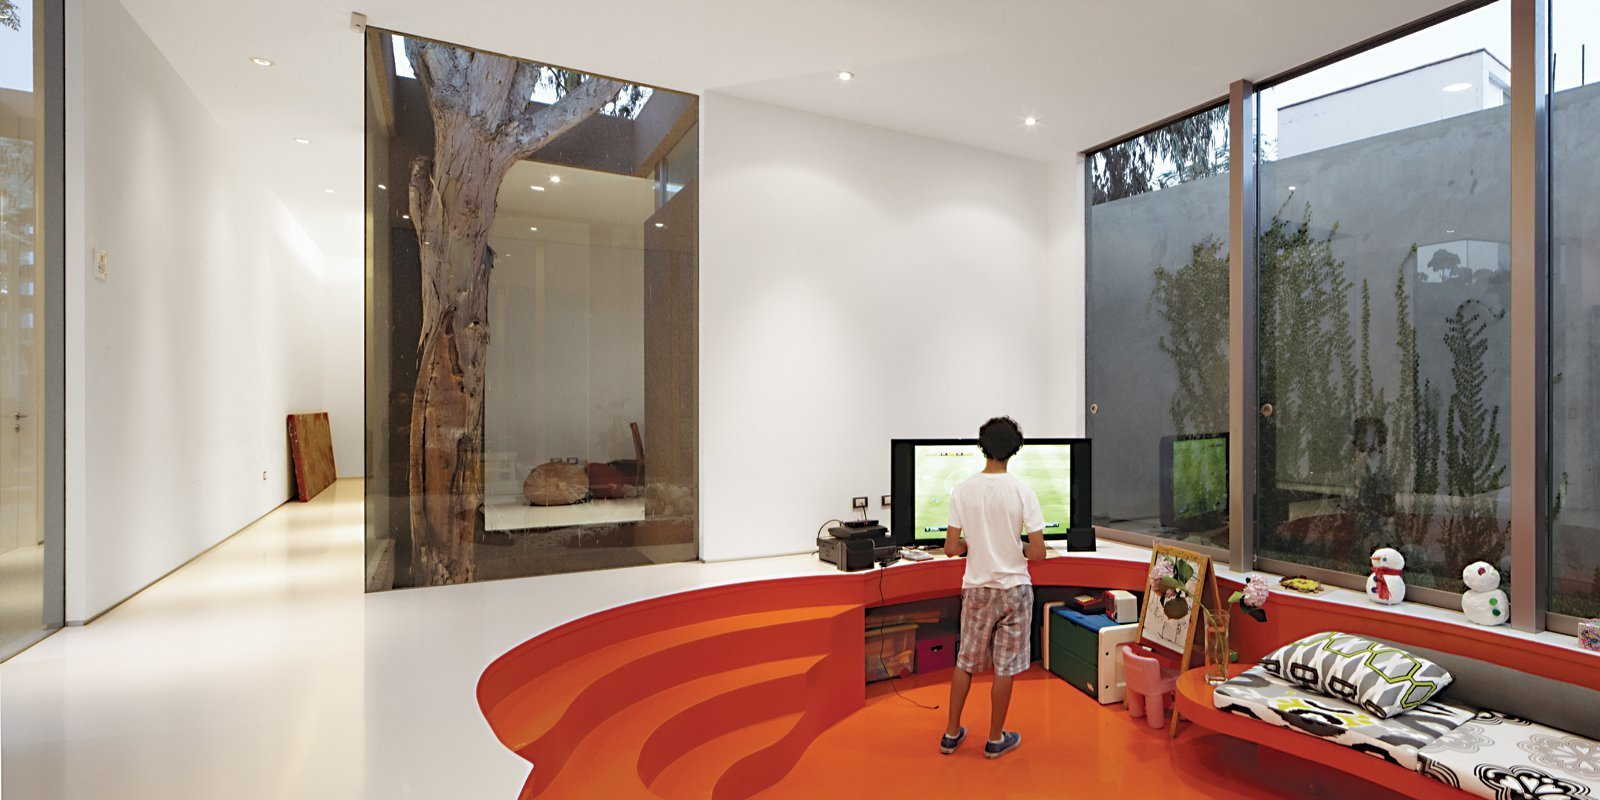 How to Plan Out a Rec Room in Your Home